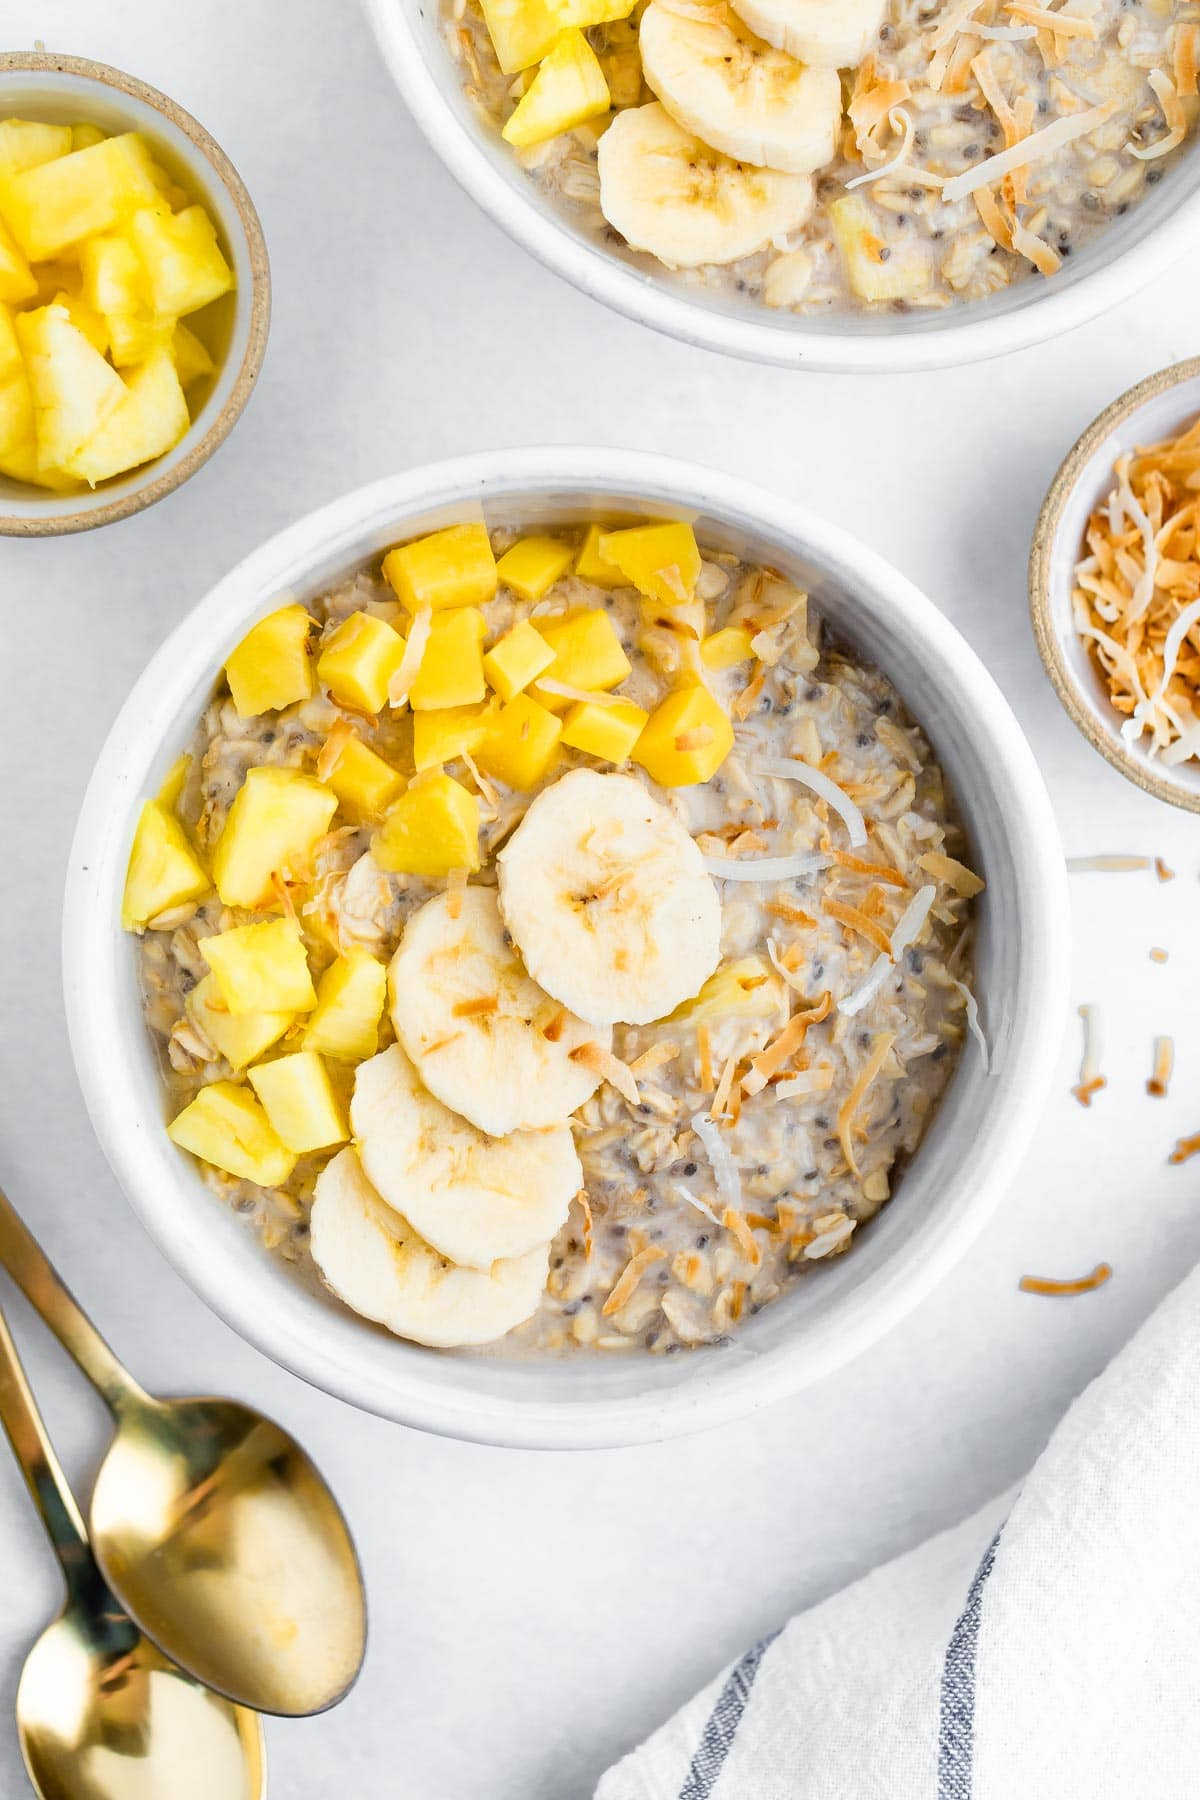 Bowl of overnight oats topped with pineapple, mango, coconut and banana